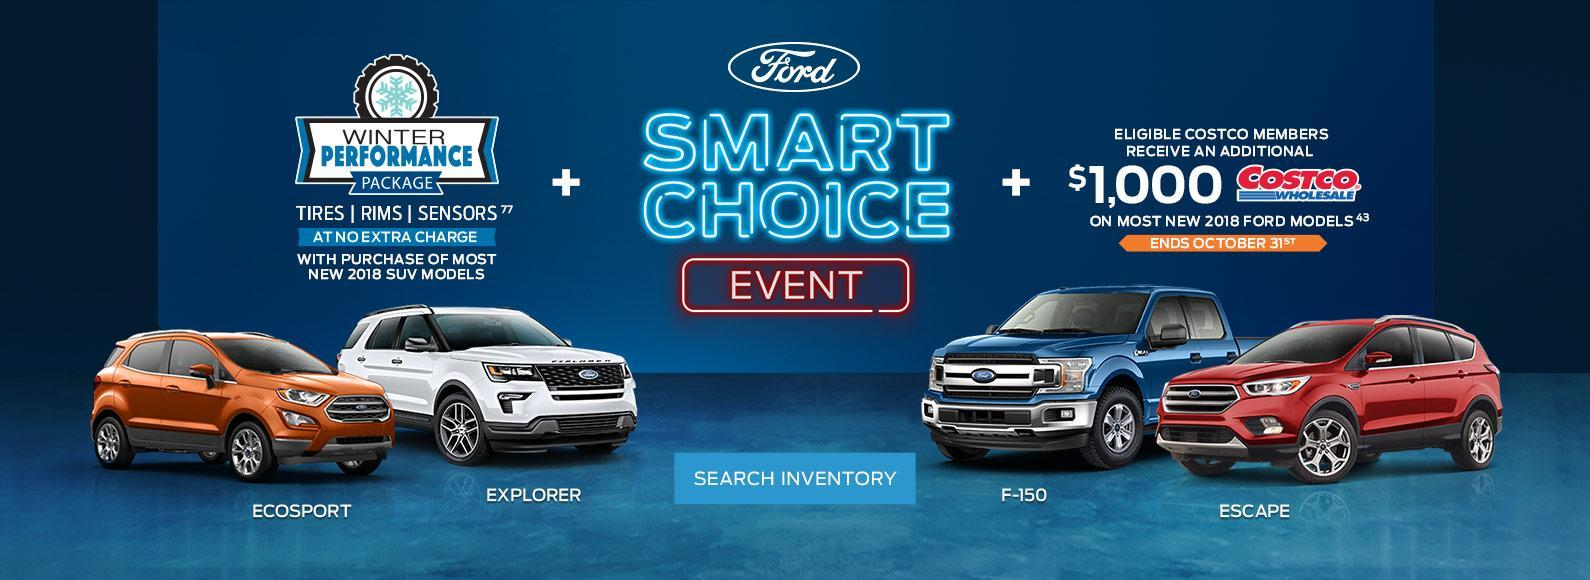 Smart Choice Event Blue F-150 and Red Escape